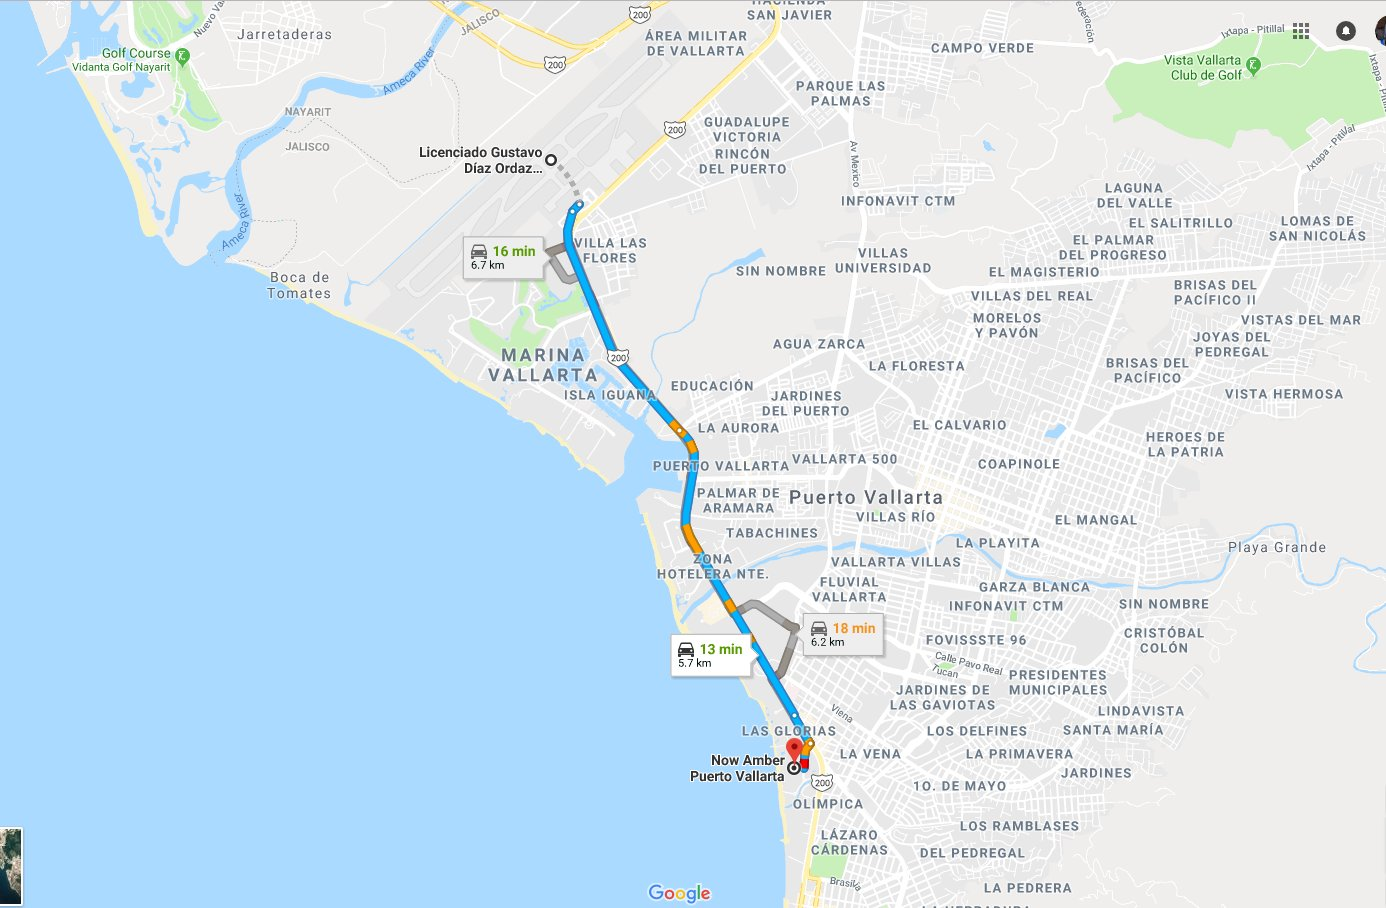 Distance from PVR Airport to Now Amber/Secrets Resorts